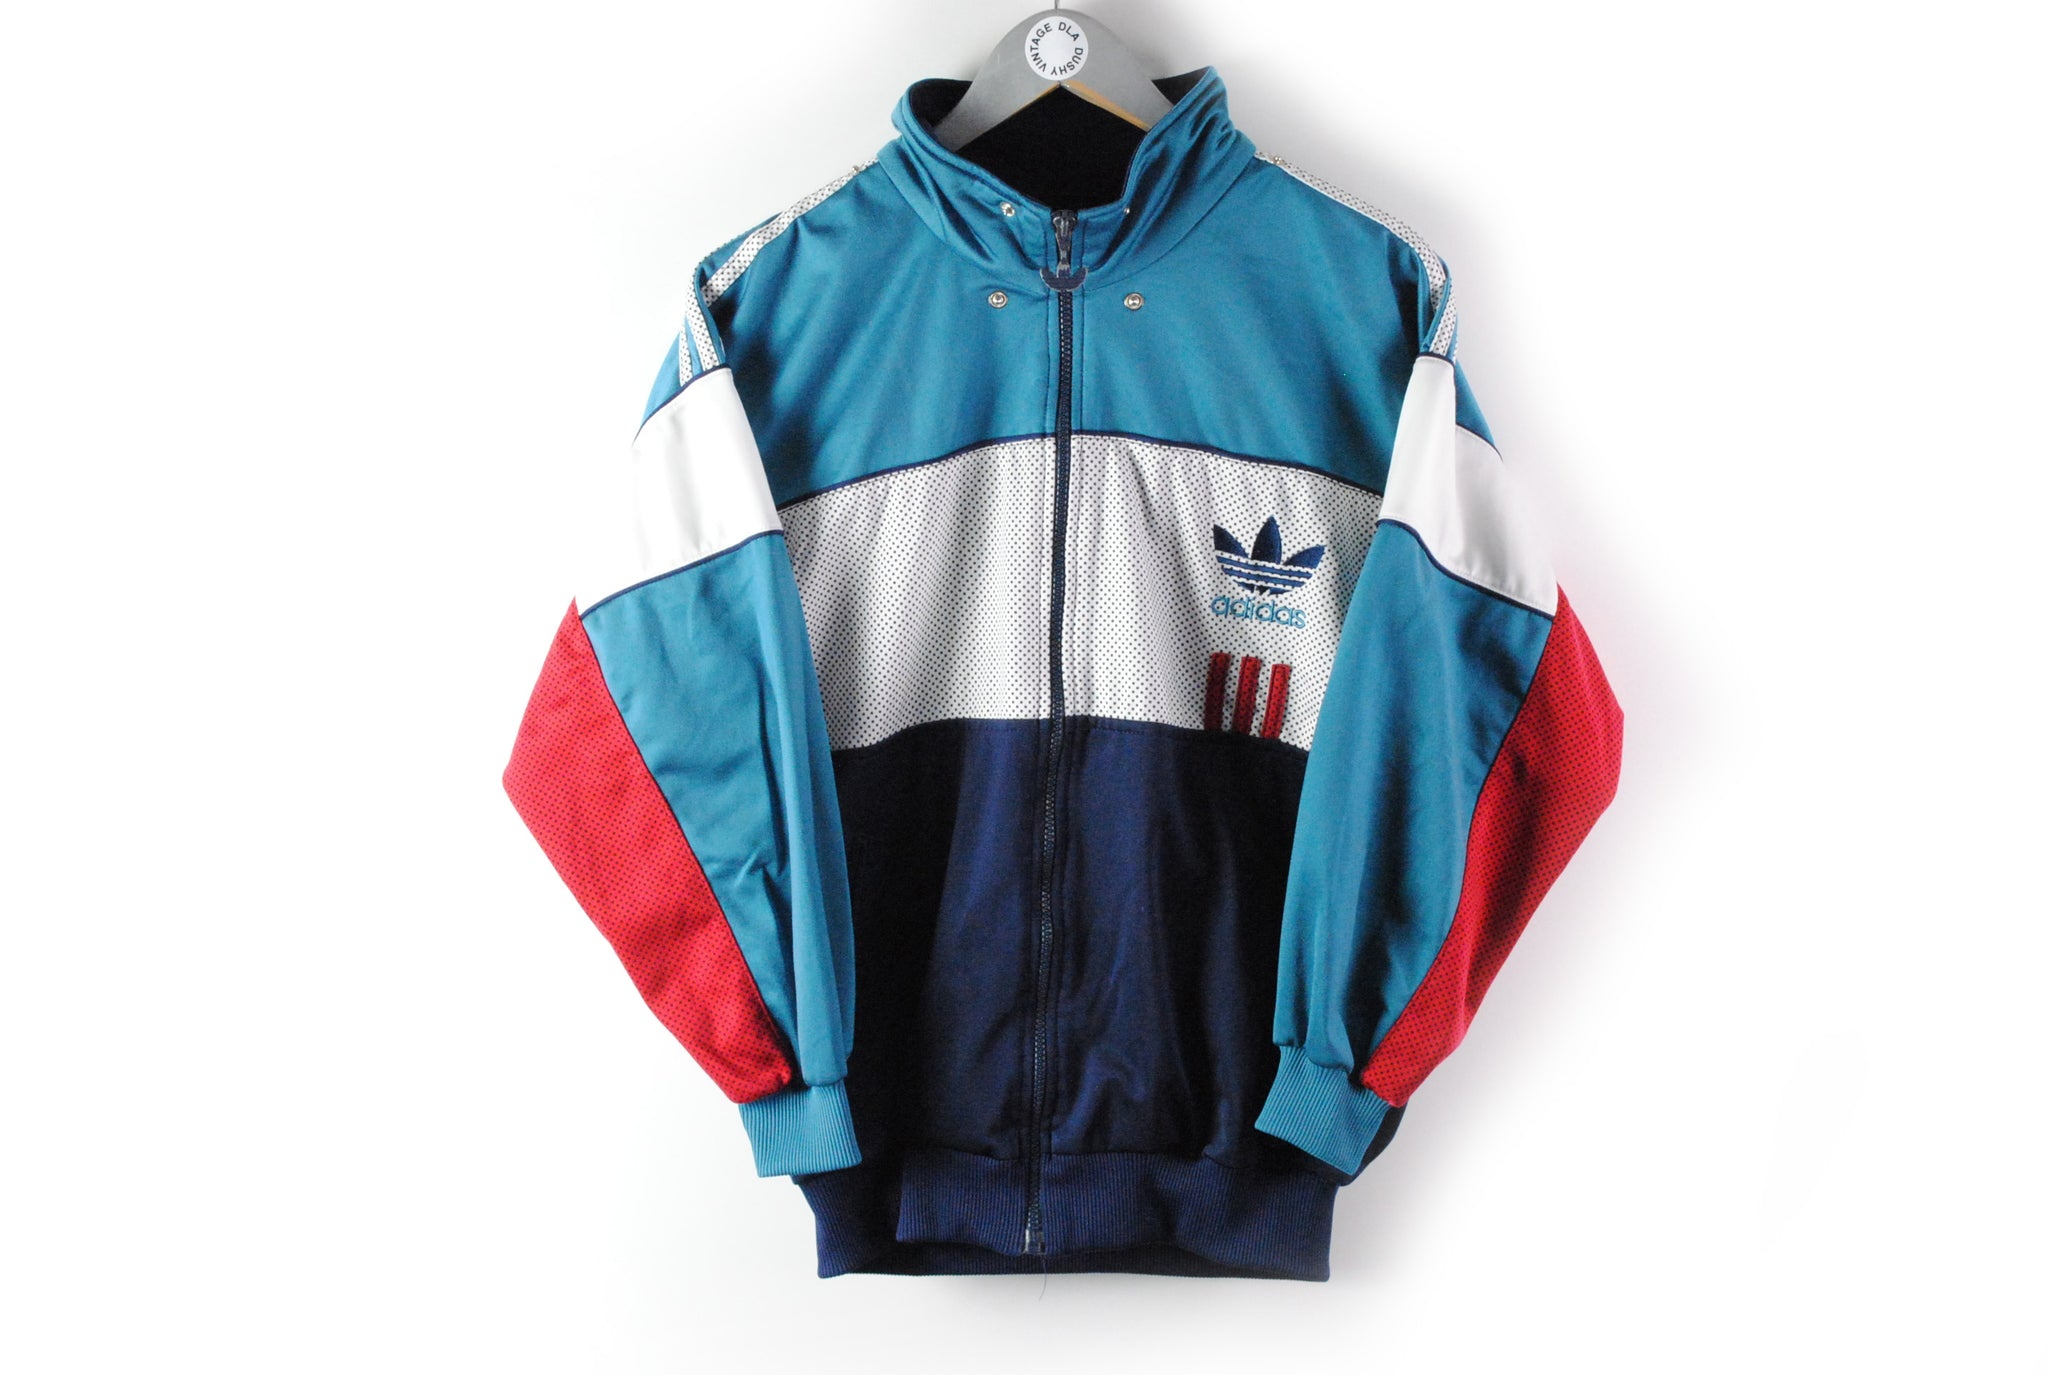 Vintage Adidas Tracksuit Small big logo green retro style sport windbreaker 90s